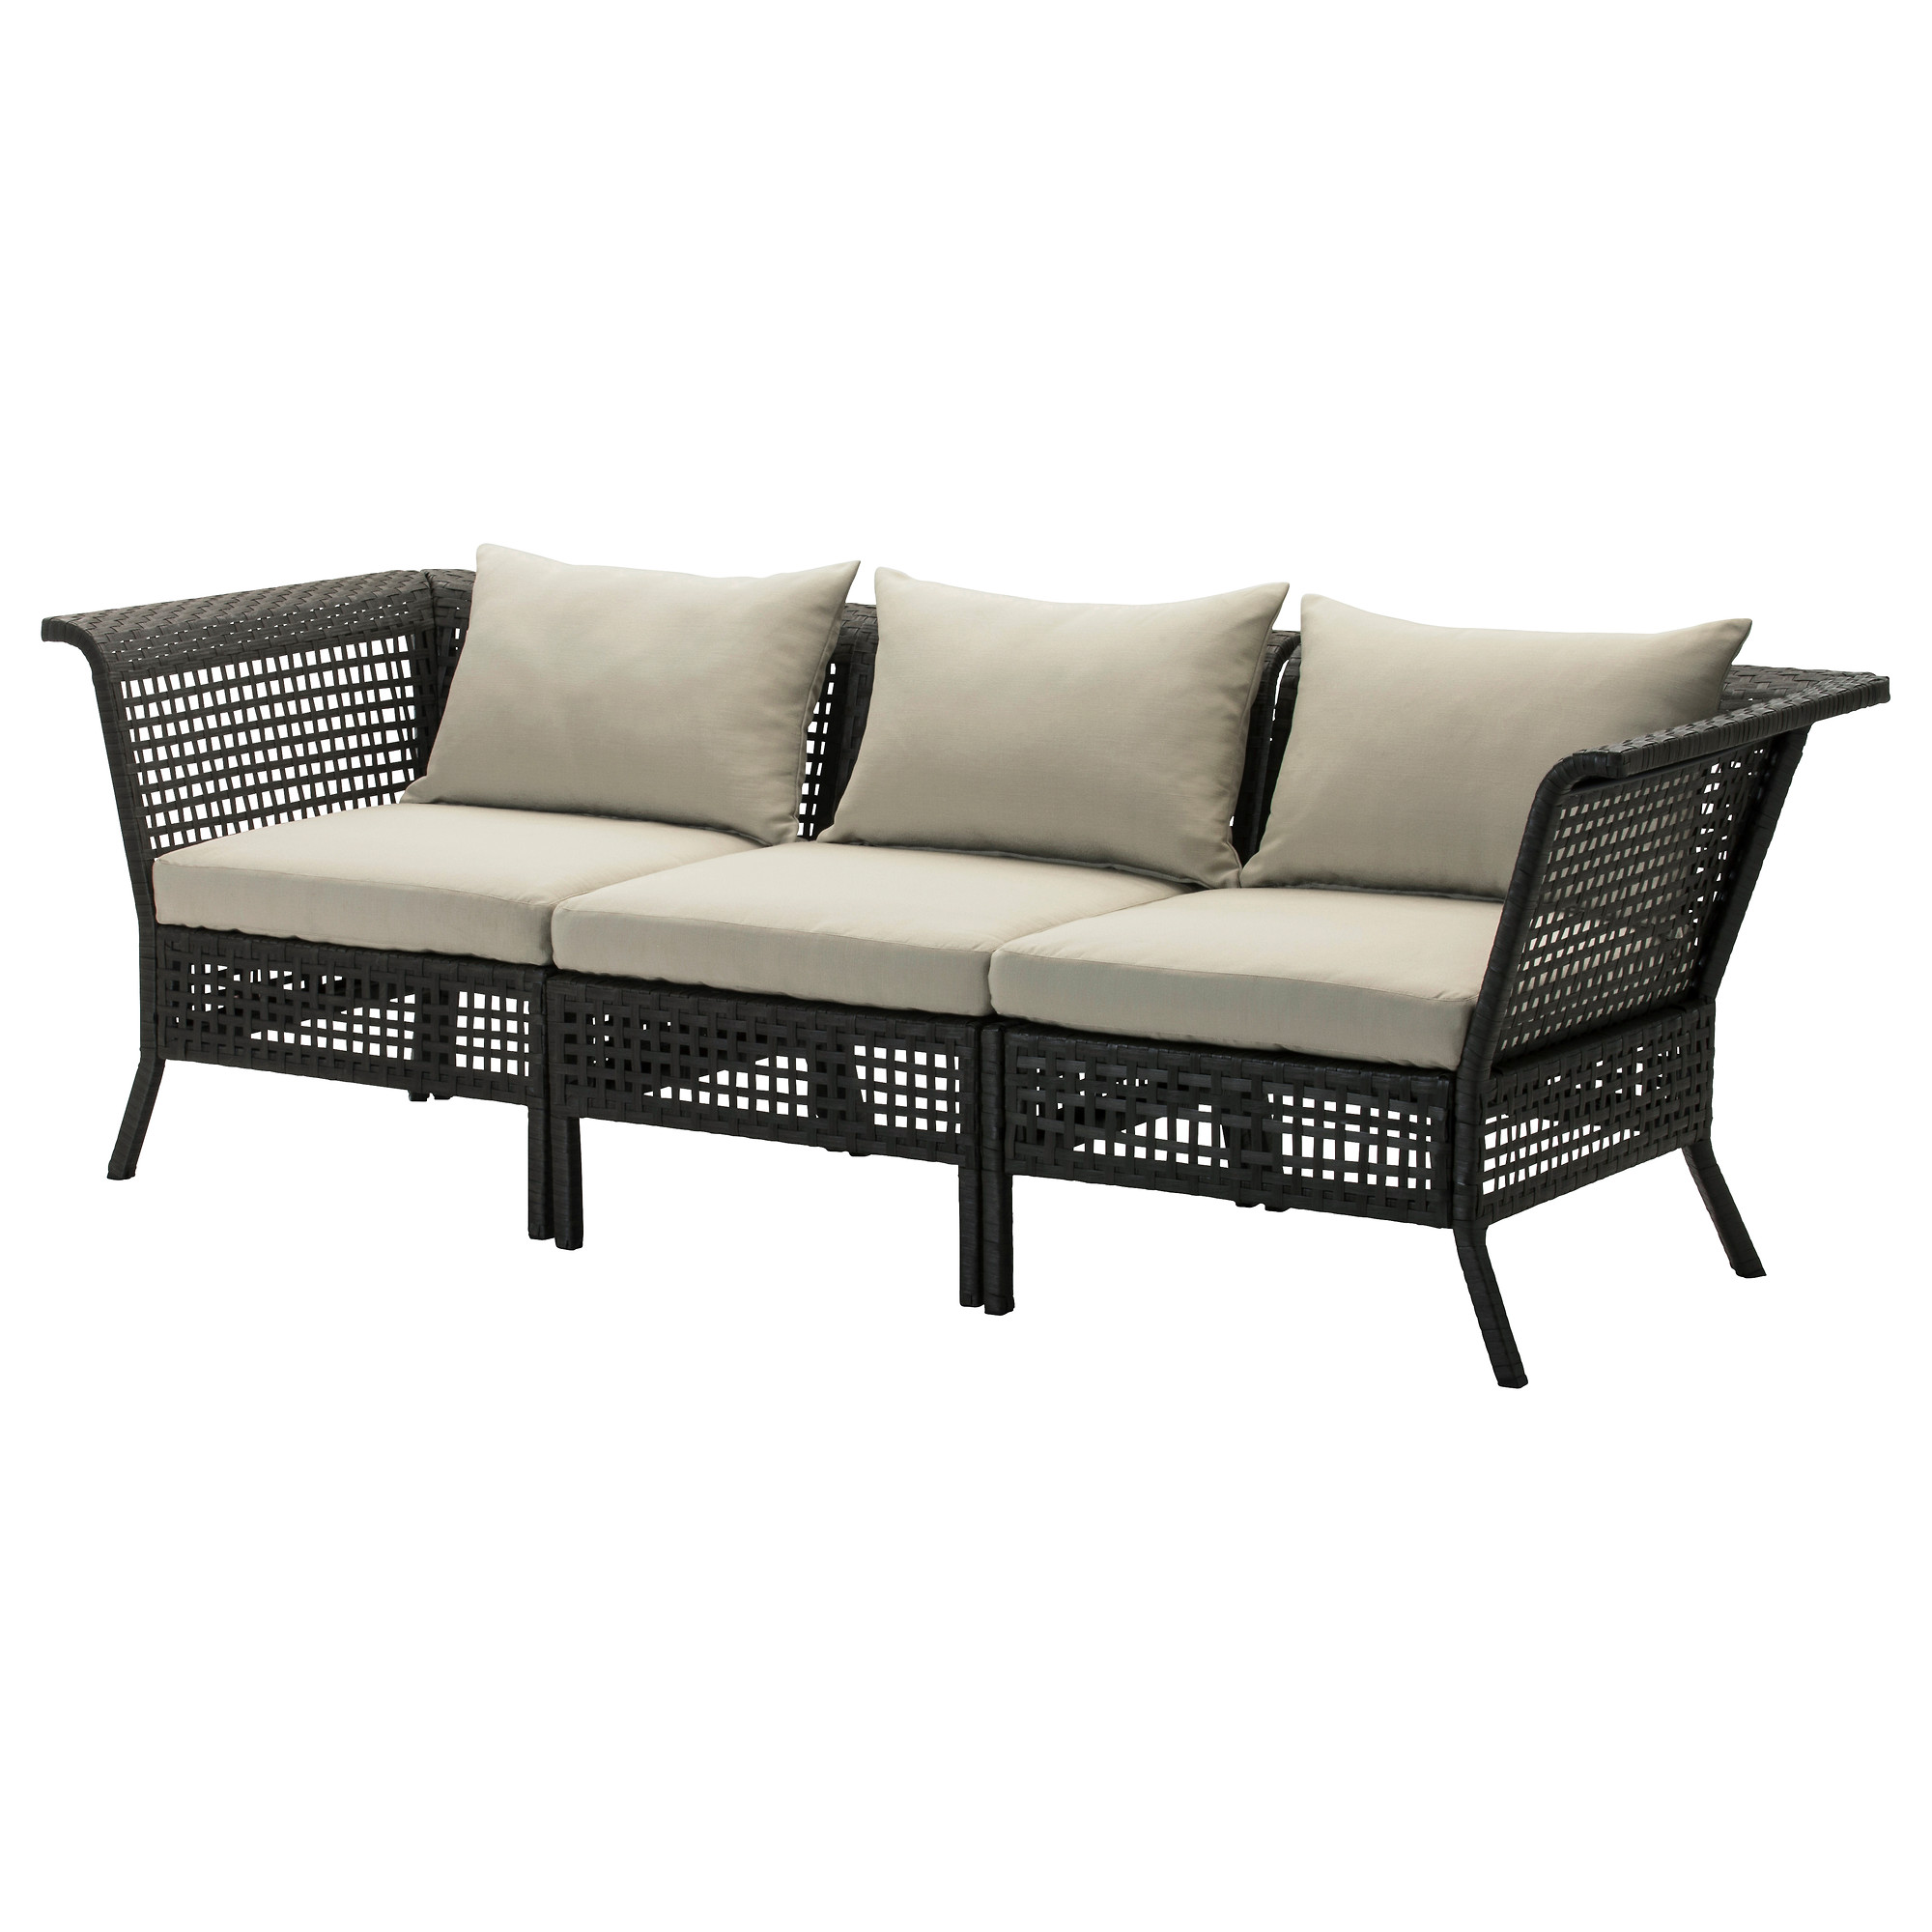 all weather rattan sofa. Black Bedroom Furniture Sets. Home Design Ideas